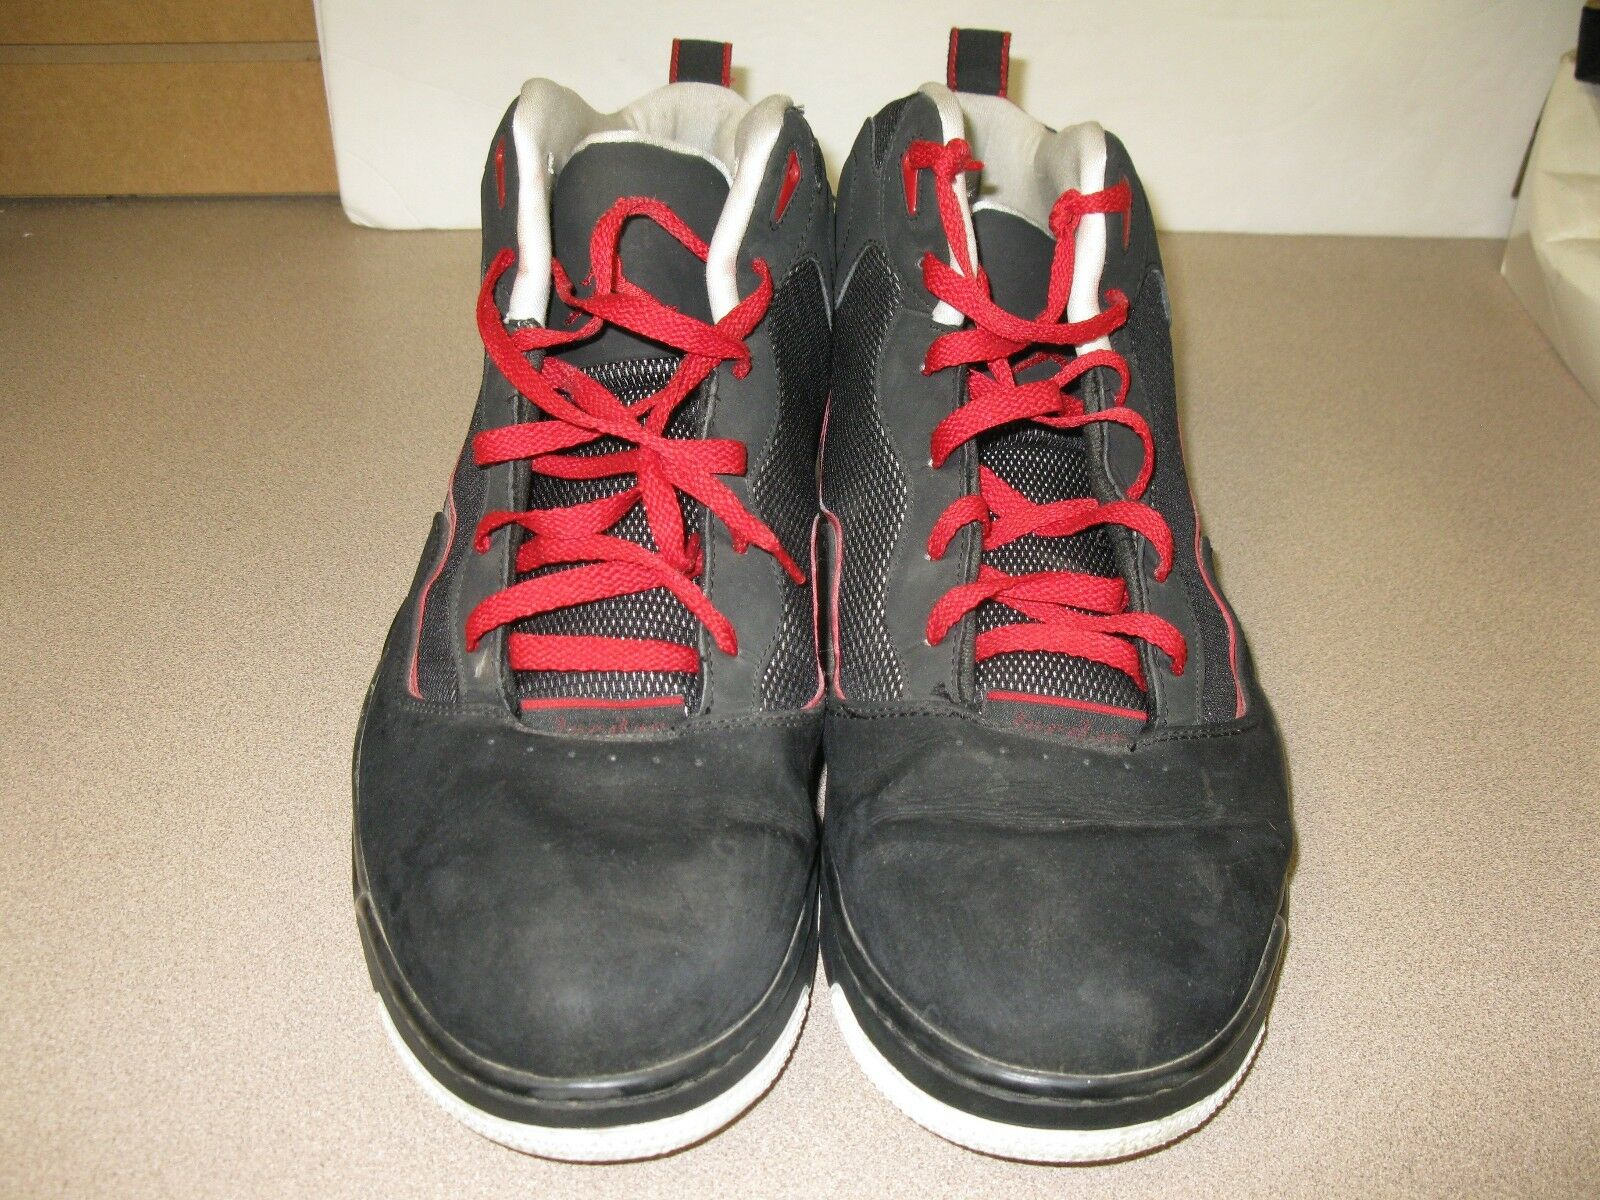 Men's  Air Jordan athletic basketball shoes size 18 black red